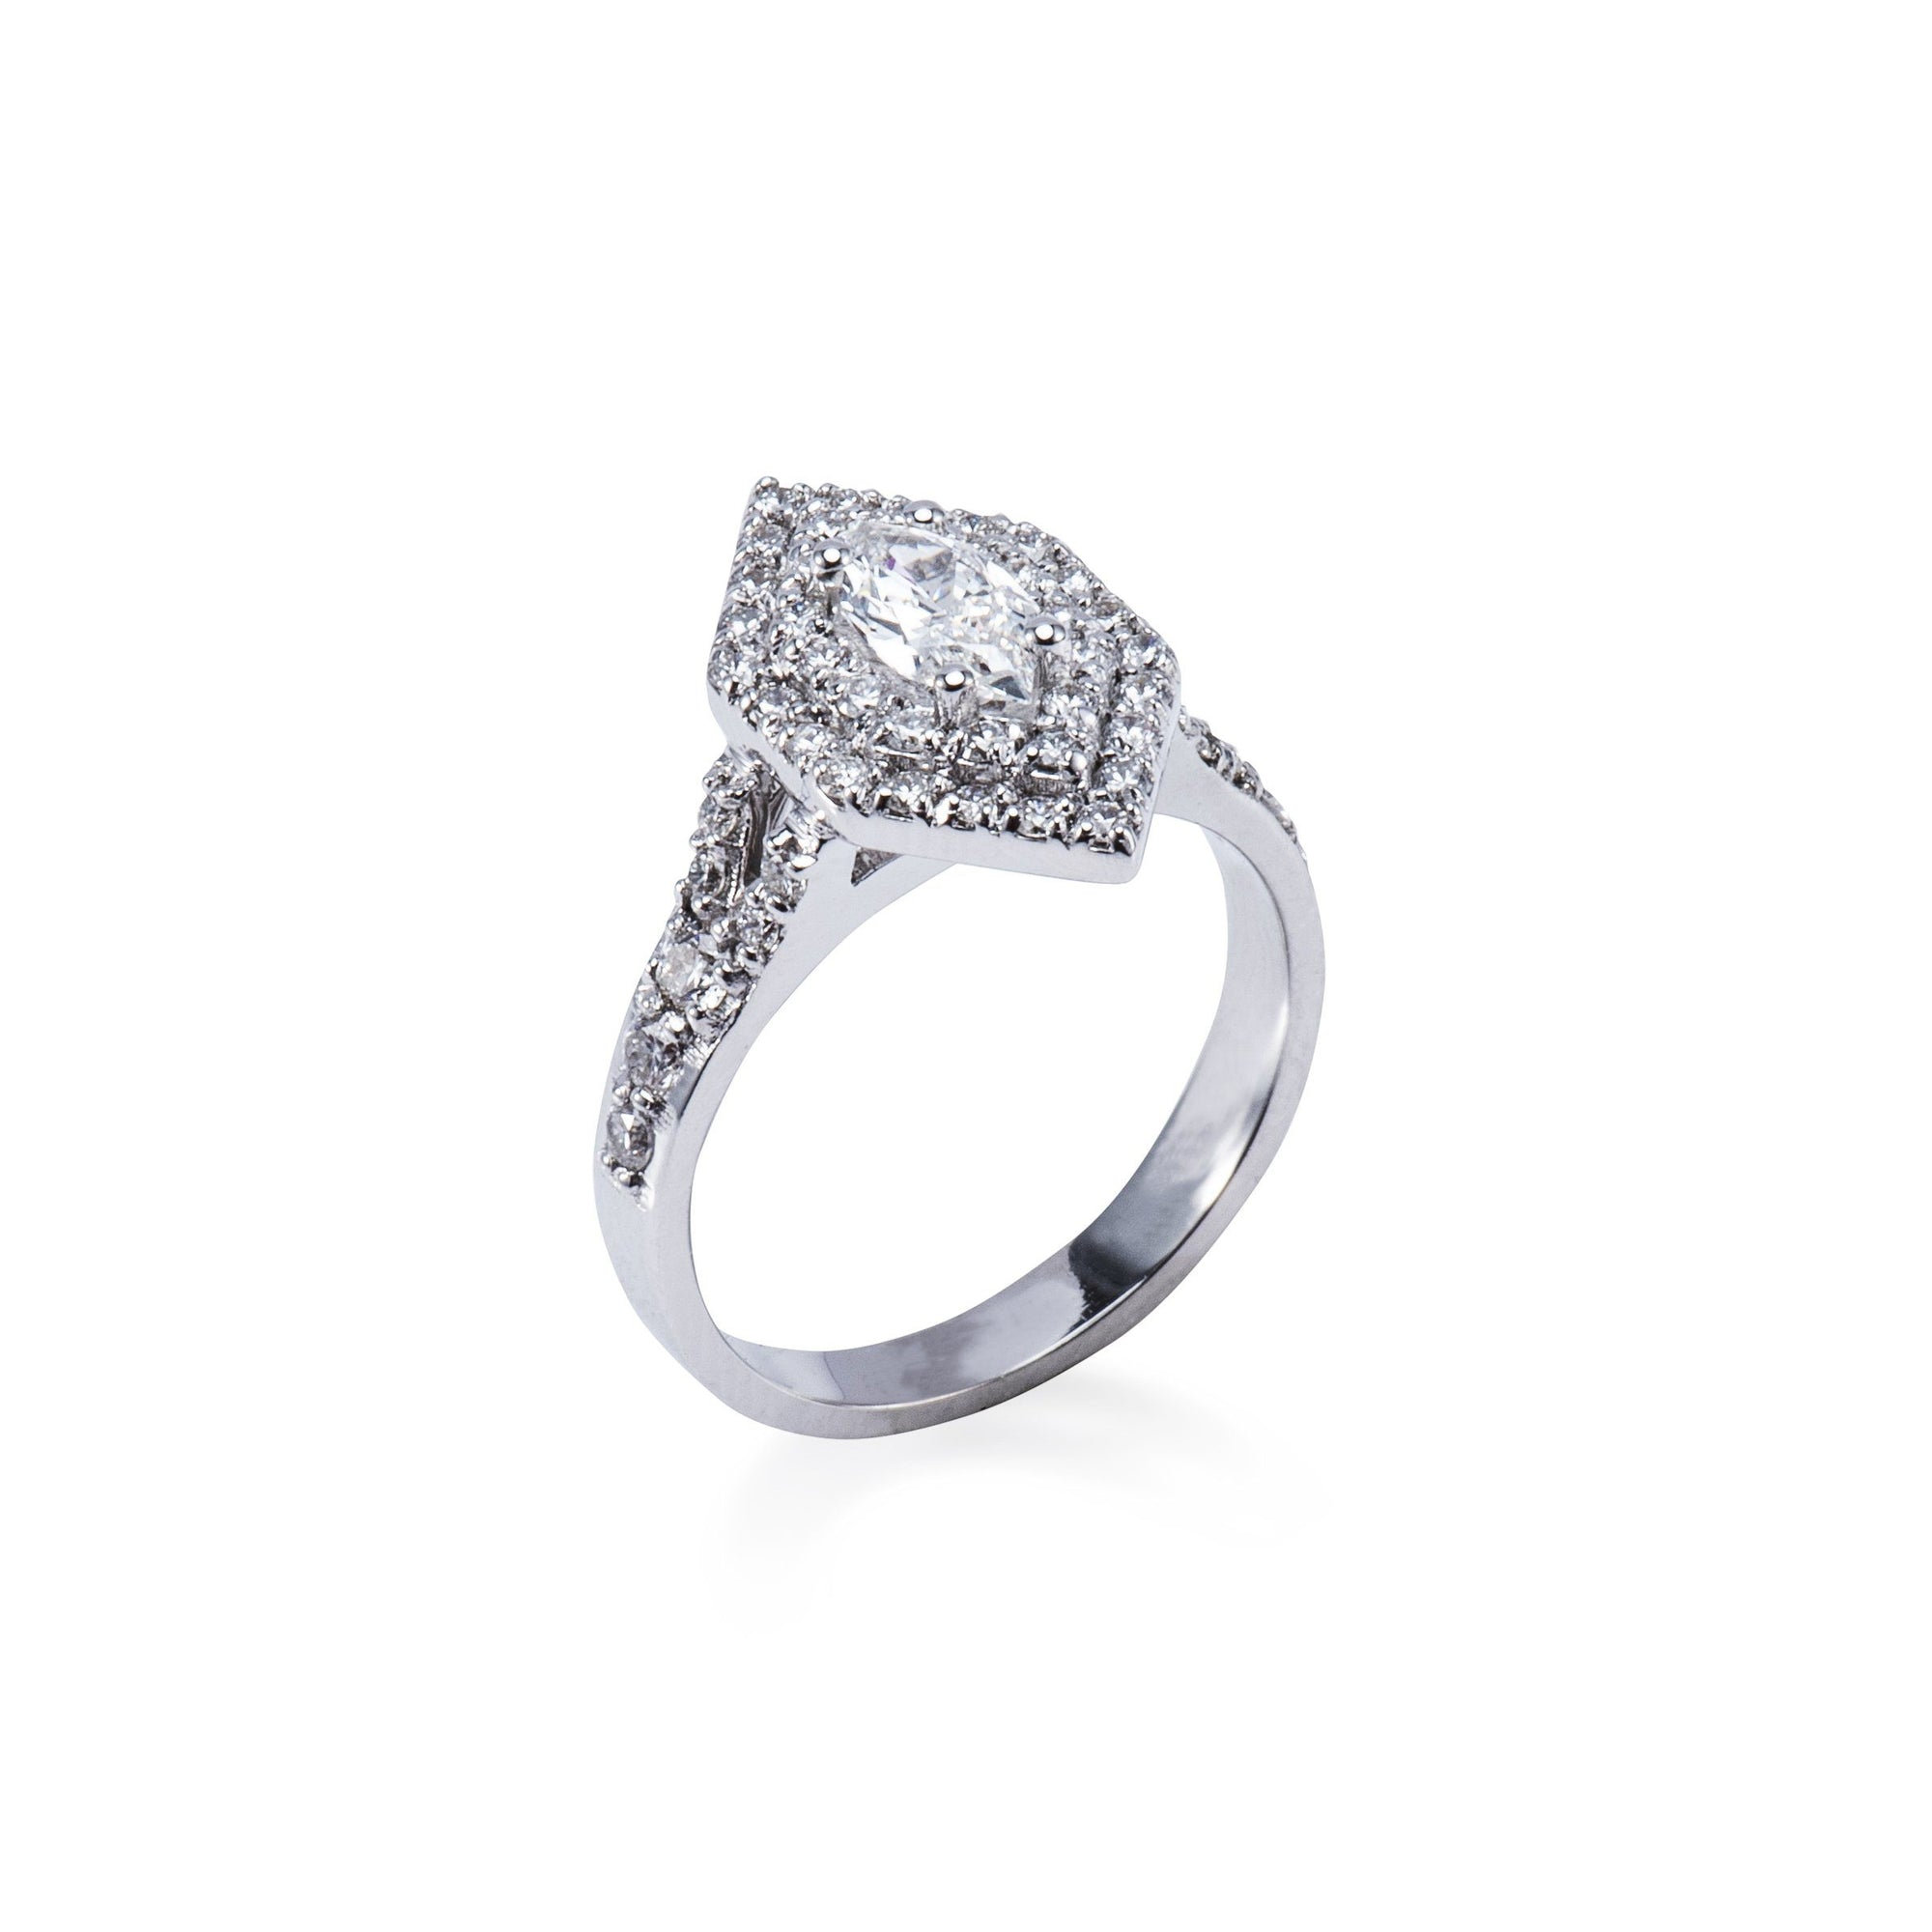 f9f2a1d02 18CT WHITE GOLD DIAMOND DOUBLE HALO STYLE MARQUISE SHAPE ENGAGEMENT RING  WITH DIAMOND SET SPLIT SHOULDERS